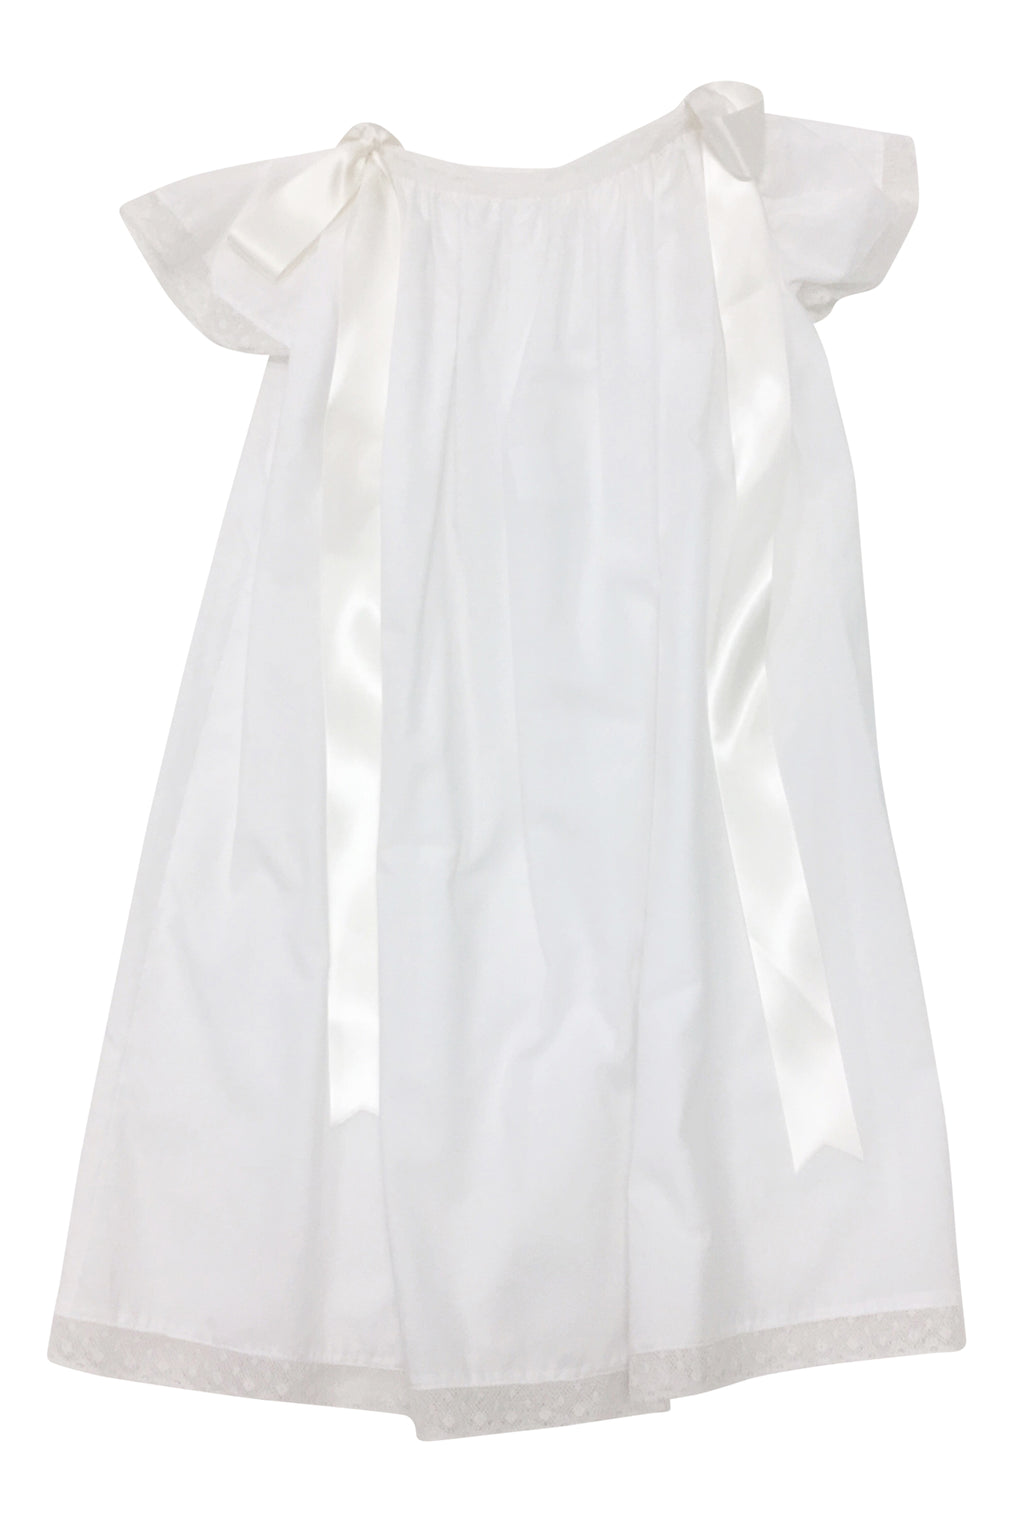 Heirloom Cap Sleeve Dress White with Ecru - Born Childrens Boutique